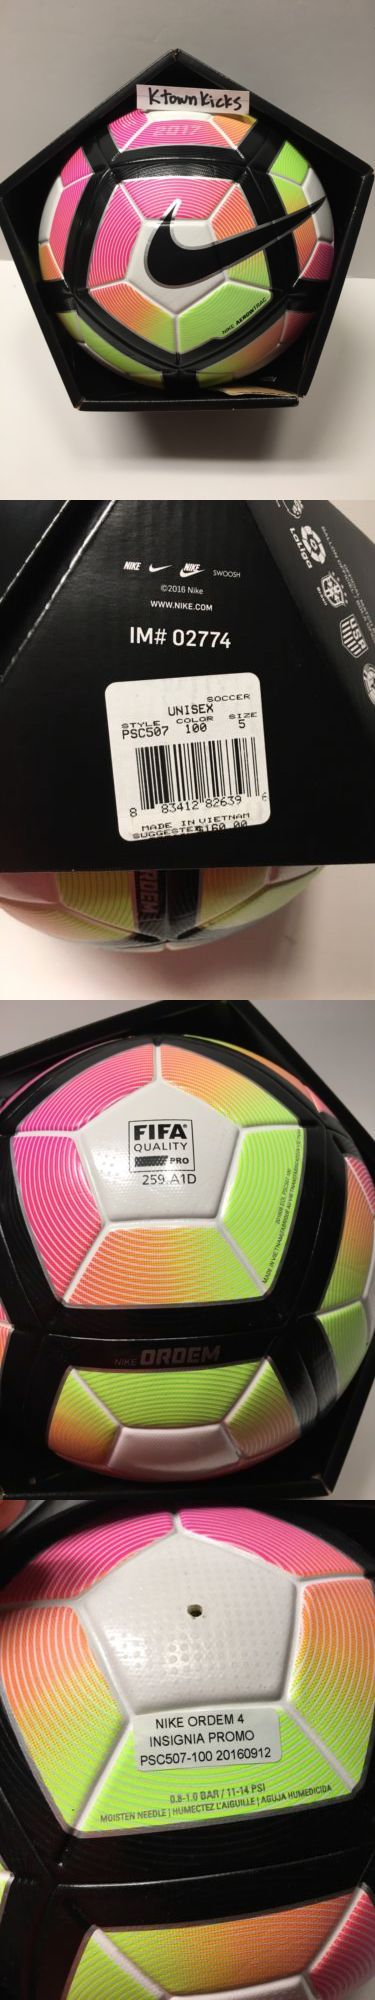 Balls 20863: Nike Ordem 4 Insignia Promo Fifa Soccer Ball Multicolor Psc507 100 Size 5 -> BUY IT NOW ONLY: $49.99 on eBay!